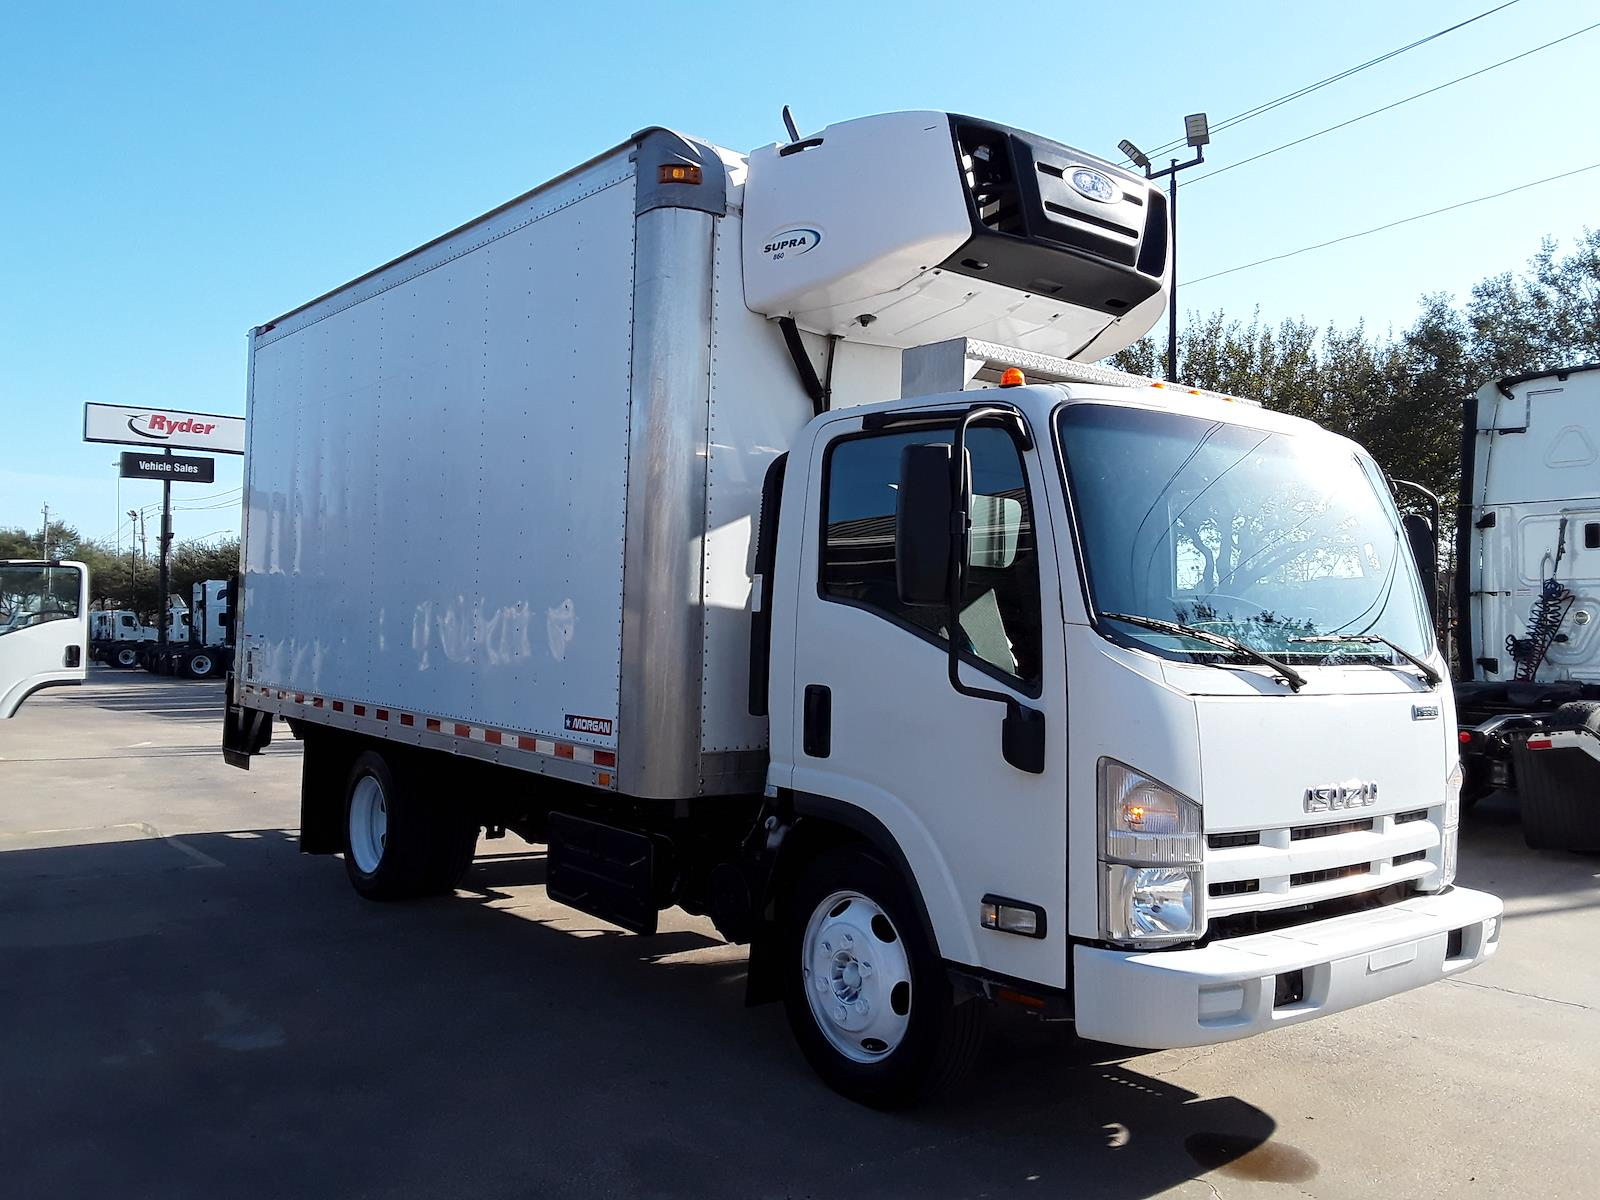 2015 Isuzu NPR-XD Regular Cab 4x2, Refrigerated Body #643756 - photo 1